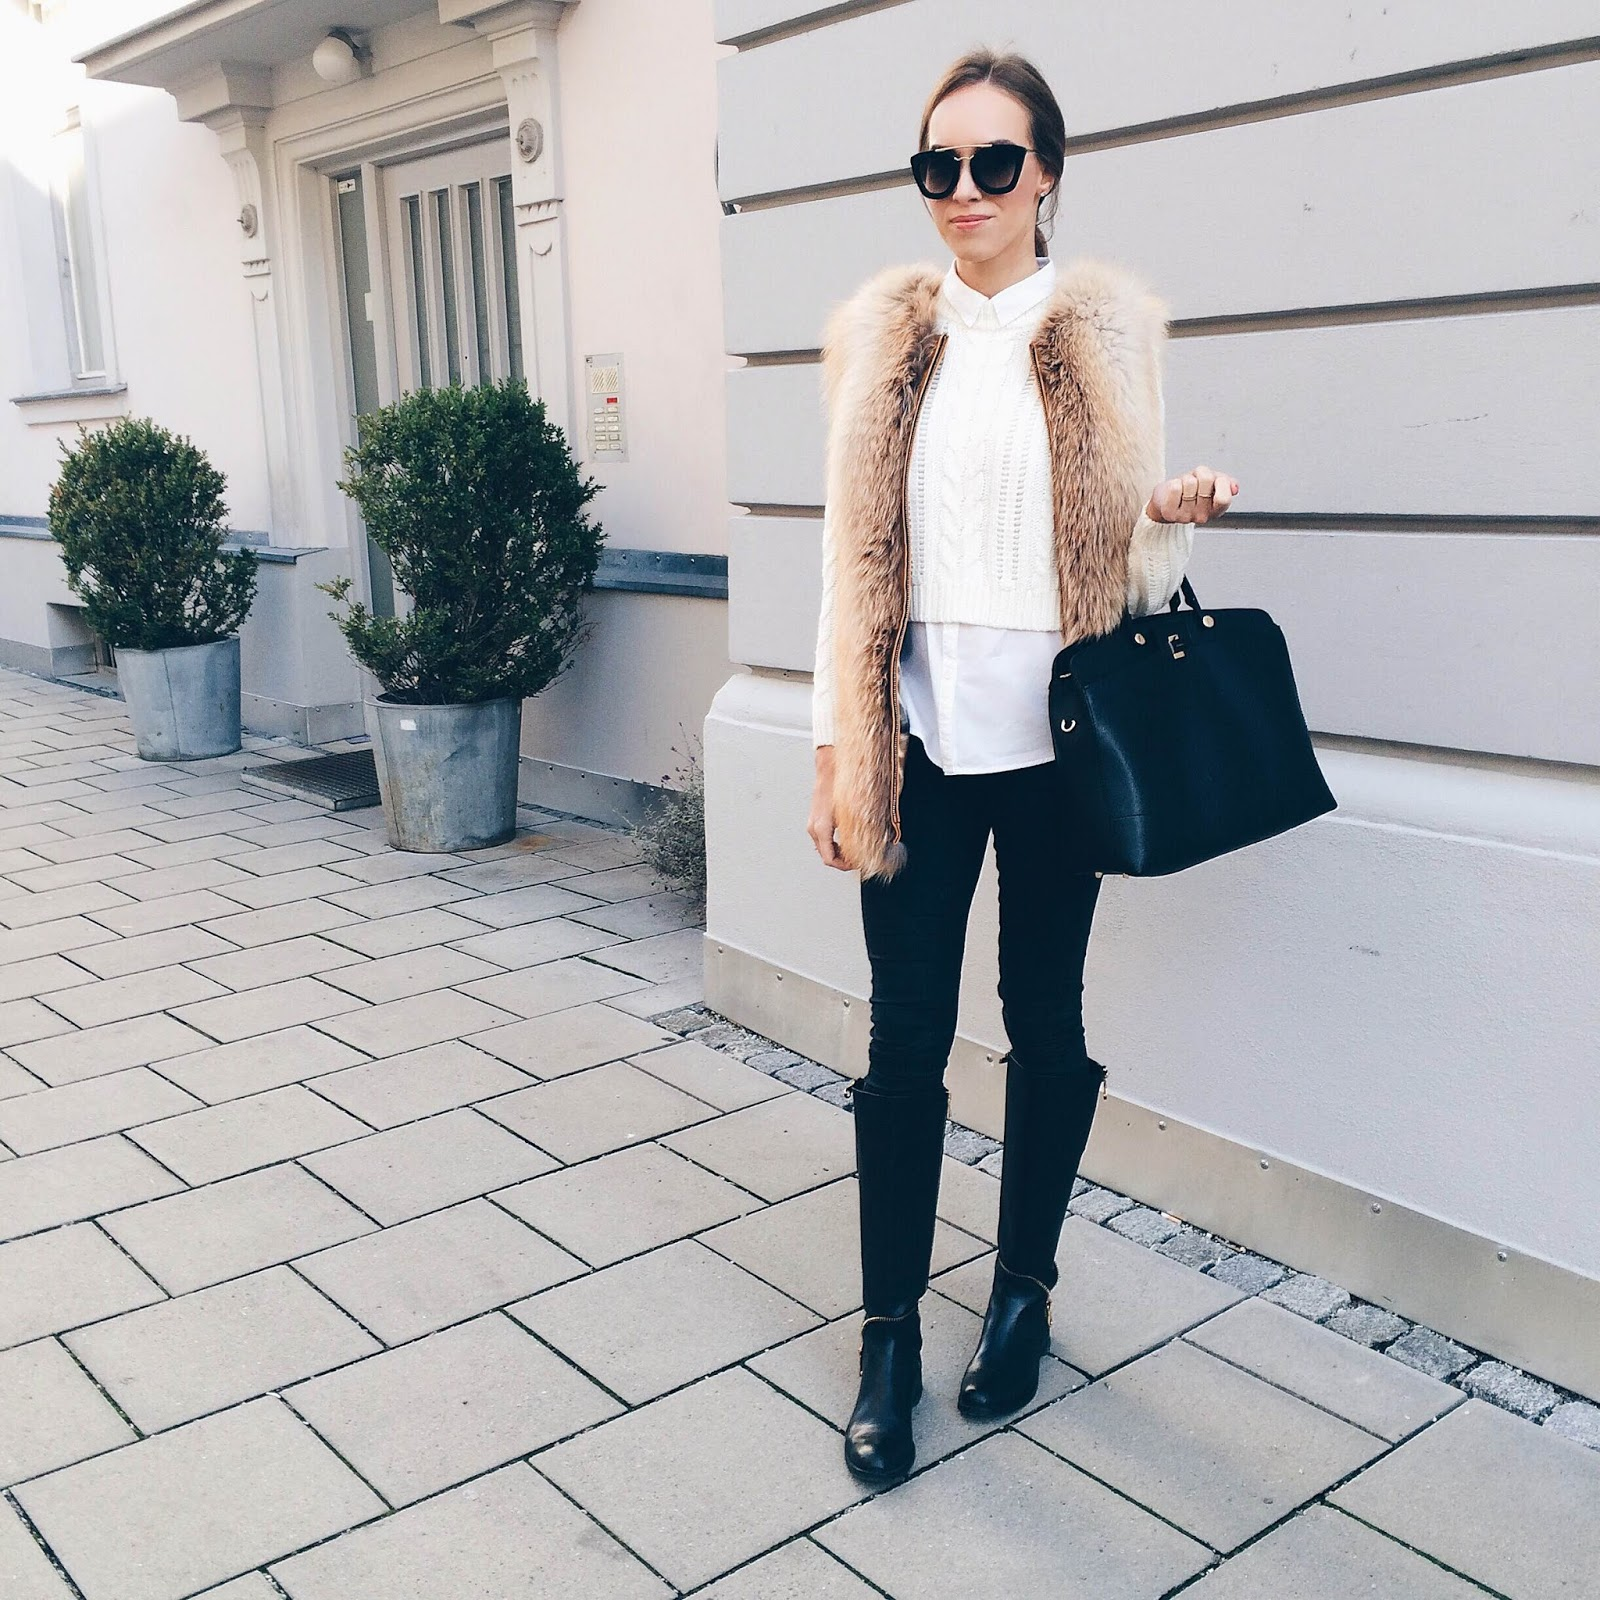 kristjaana mere cropped sweater white shirt fox fur vest black jeans classic winter outfit